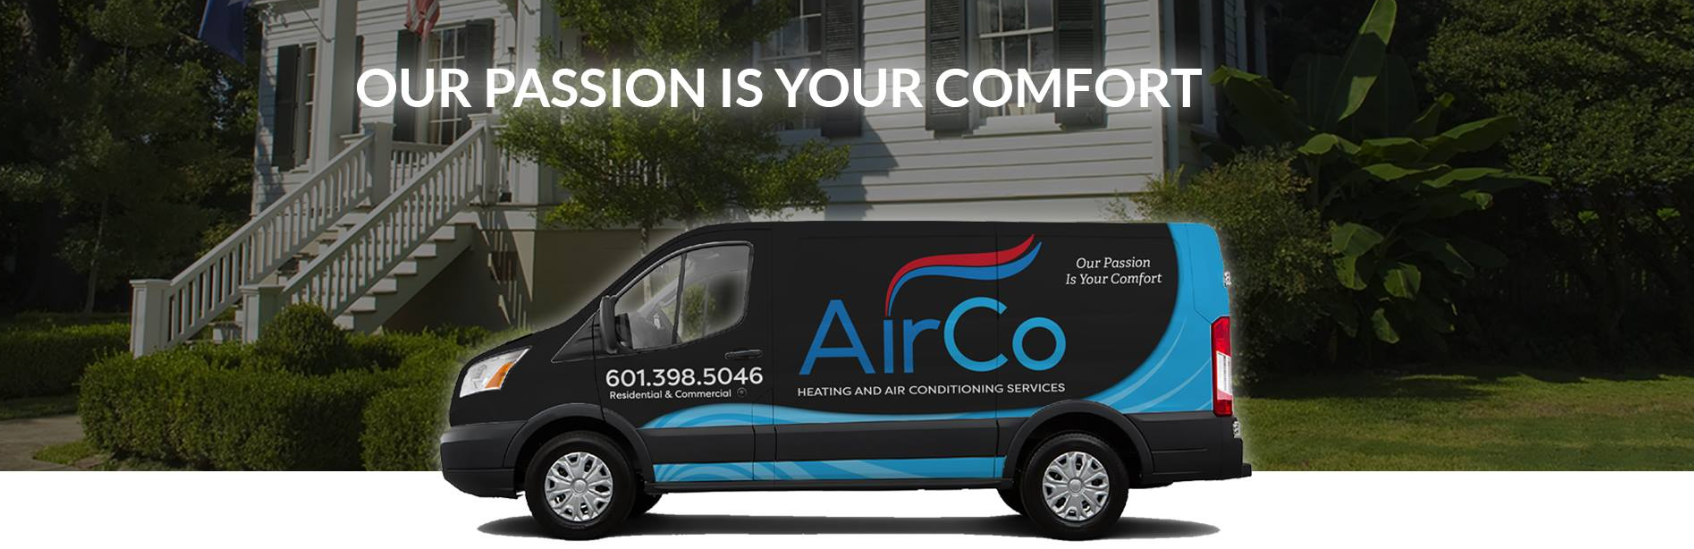 AirCo - Heating & Air Conditioning Services LLC reviews | Heating & Air Conditioning/HVAC at 100 Brooks Drive - Brandon MS